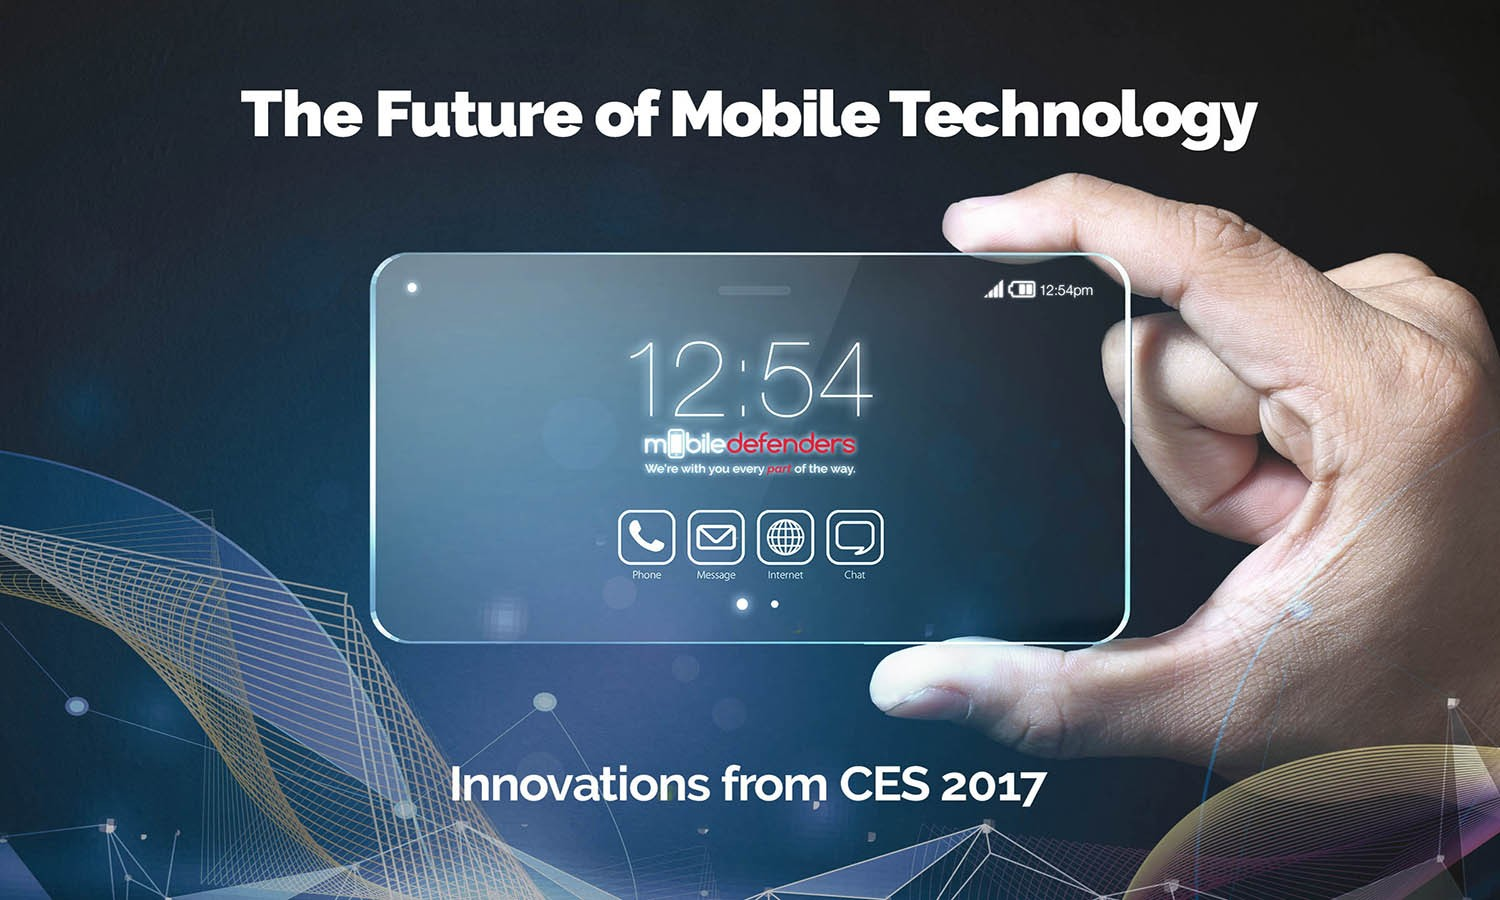 CES 2017 Overview: A Milestone for Tech